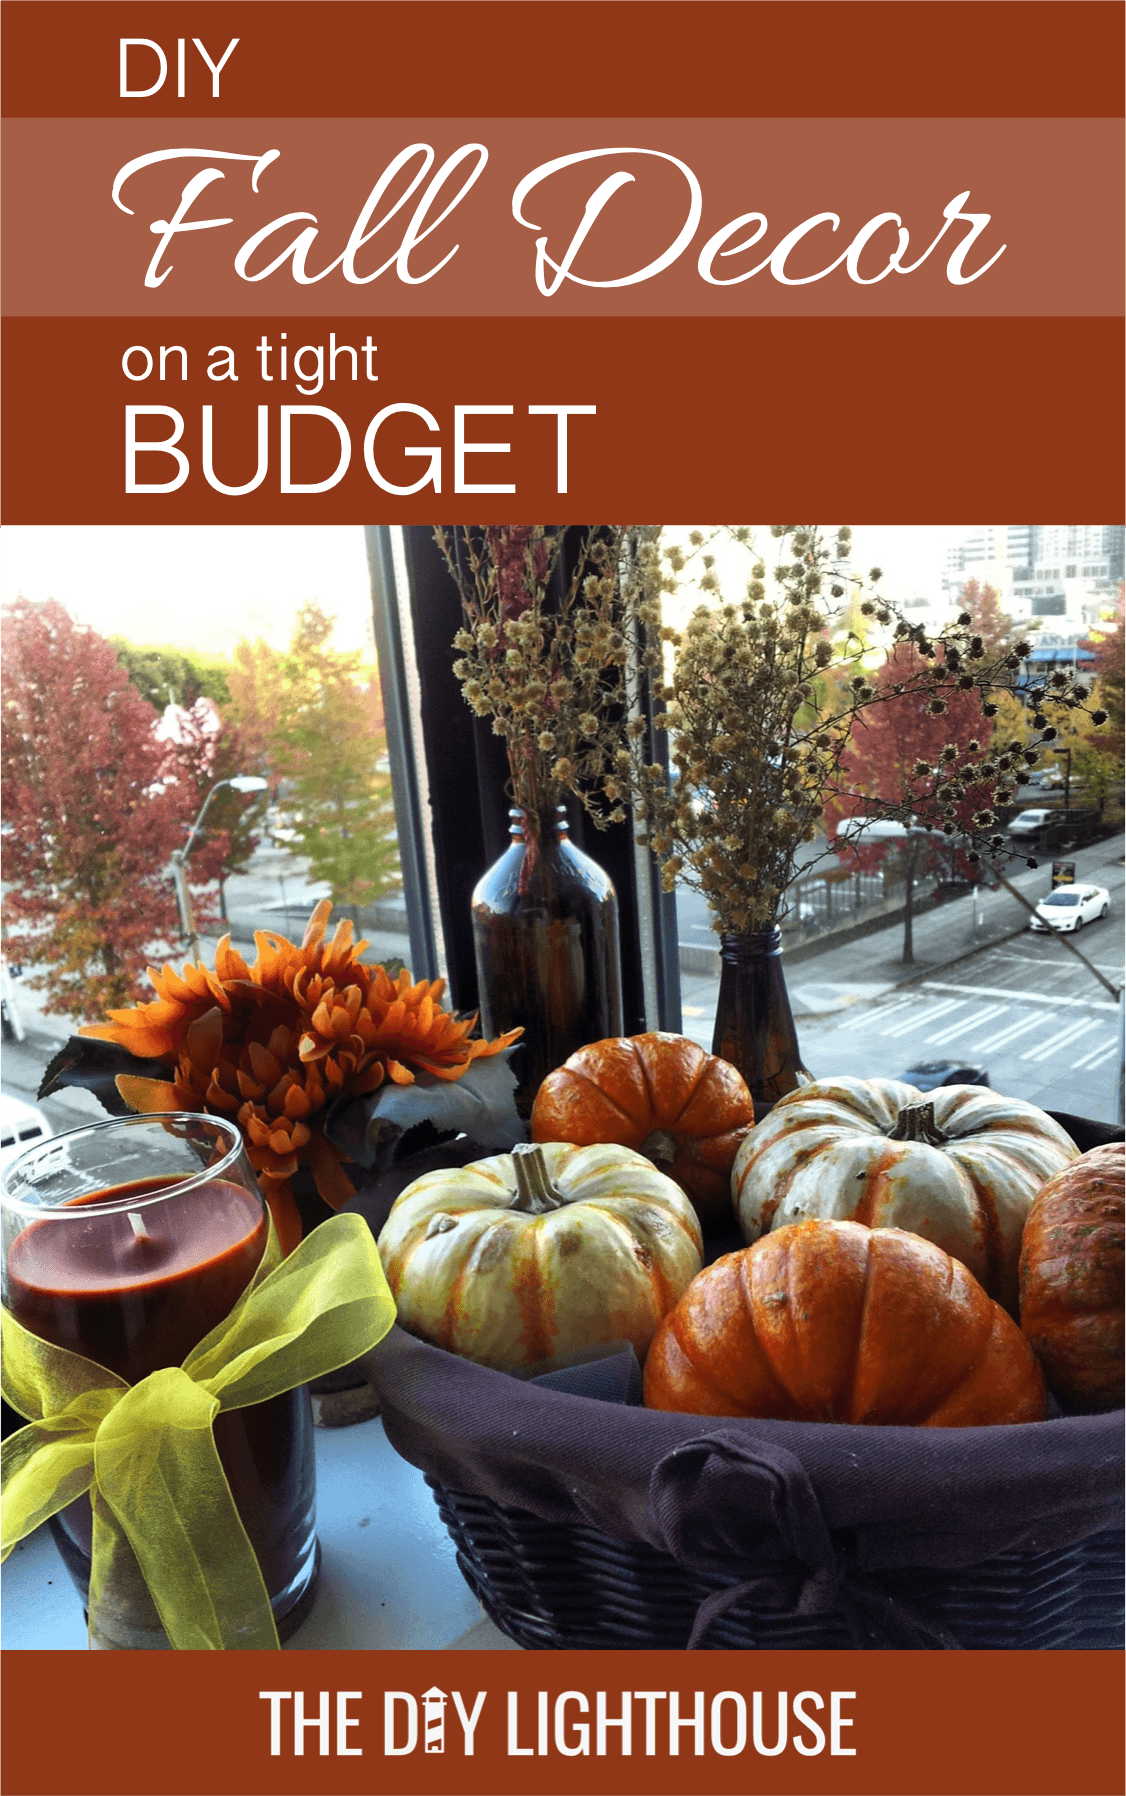 diy home decor for fall fall decor inspiration for a tight budget the diy lighthouse 12088